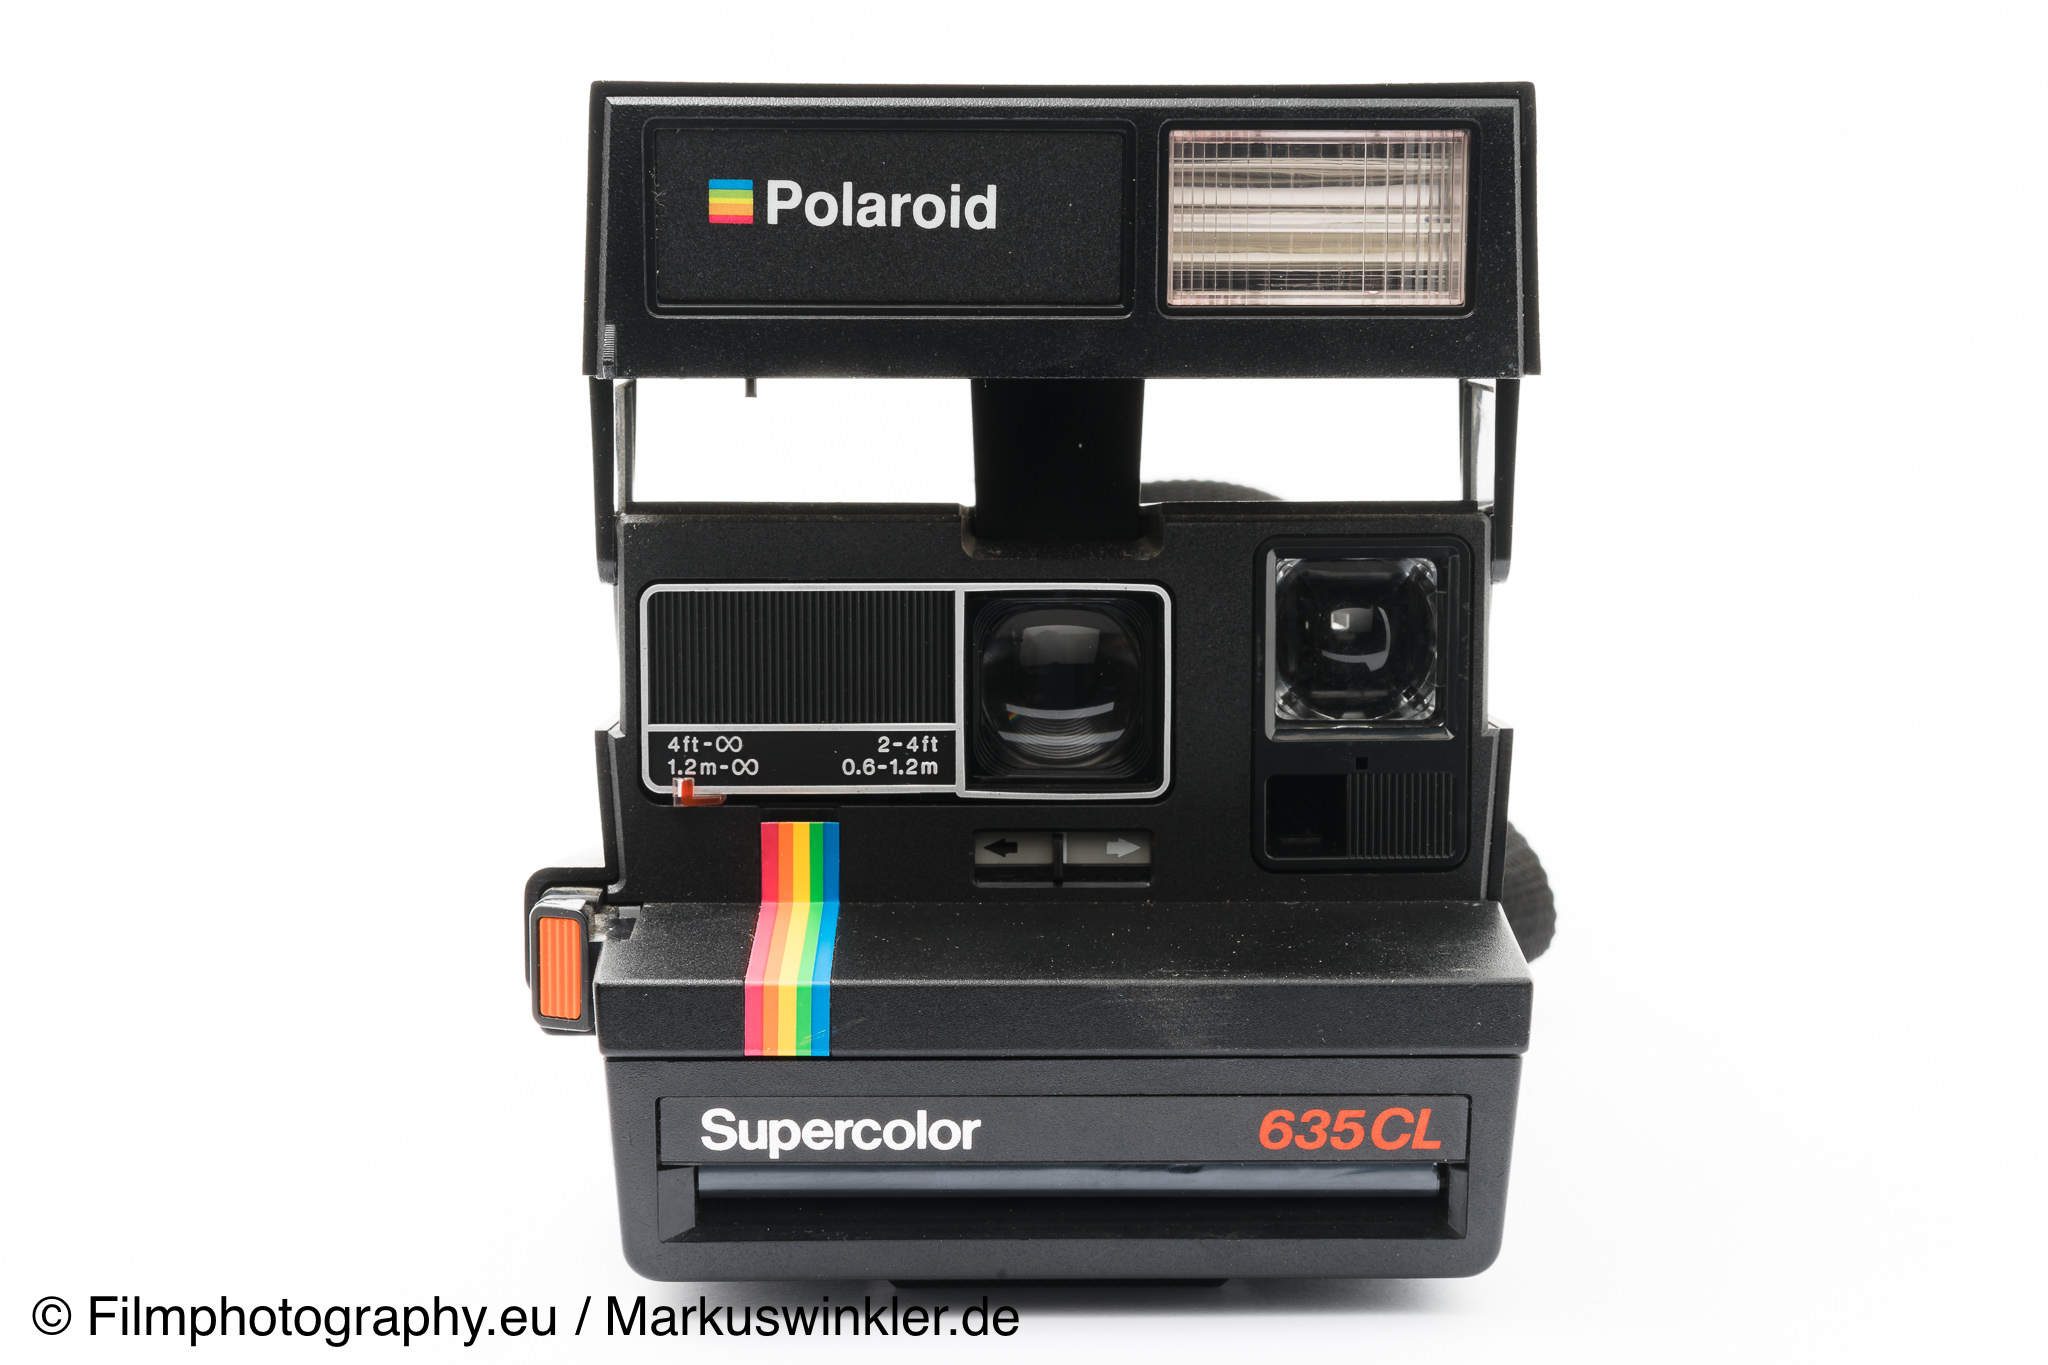 polaroid supercolor 635 cl sofortbildkamera. Black Bedroom Furniture Sets. Home Design Ideas